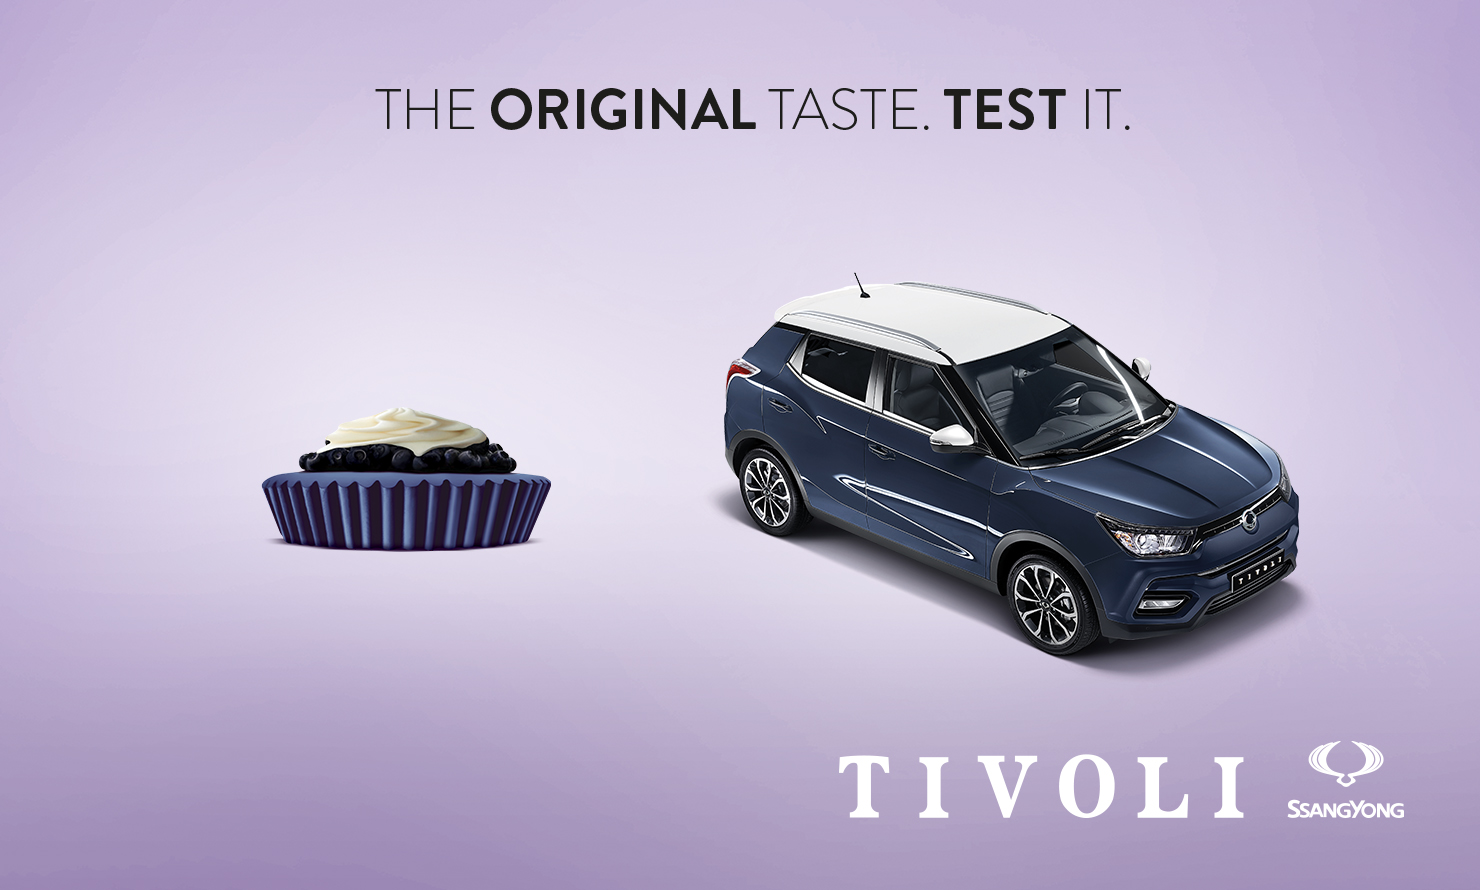 https://www.kubelibre.com/uploads/Slider-work-tutti-clienti/ssangyong-tivoli-the-original-taste-test-it-4.jpg